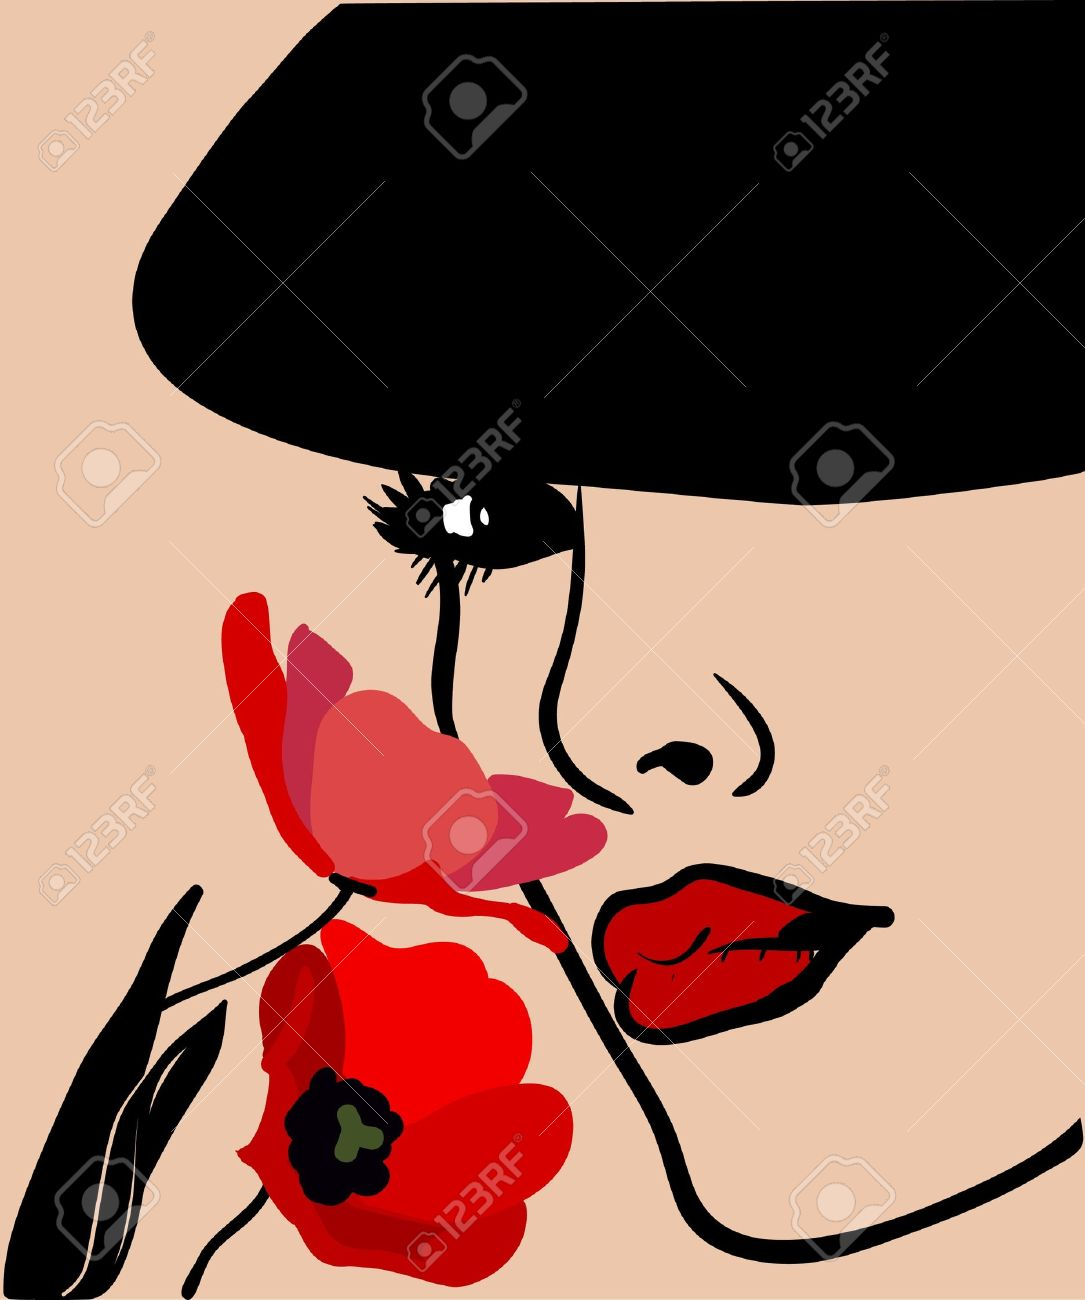 Background with a woman s face in a hat and flowers Stock Vector - 12429942